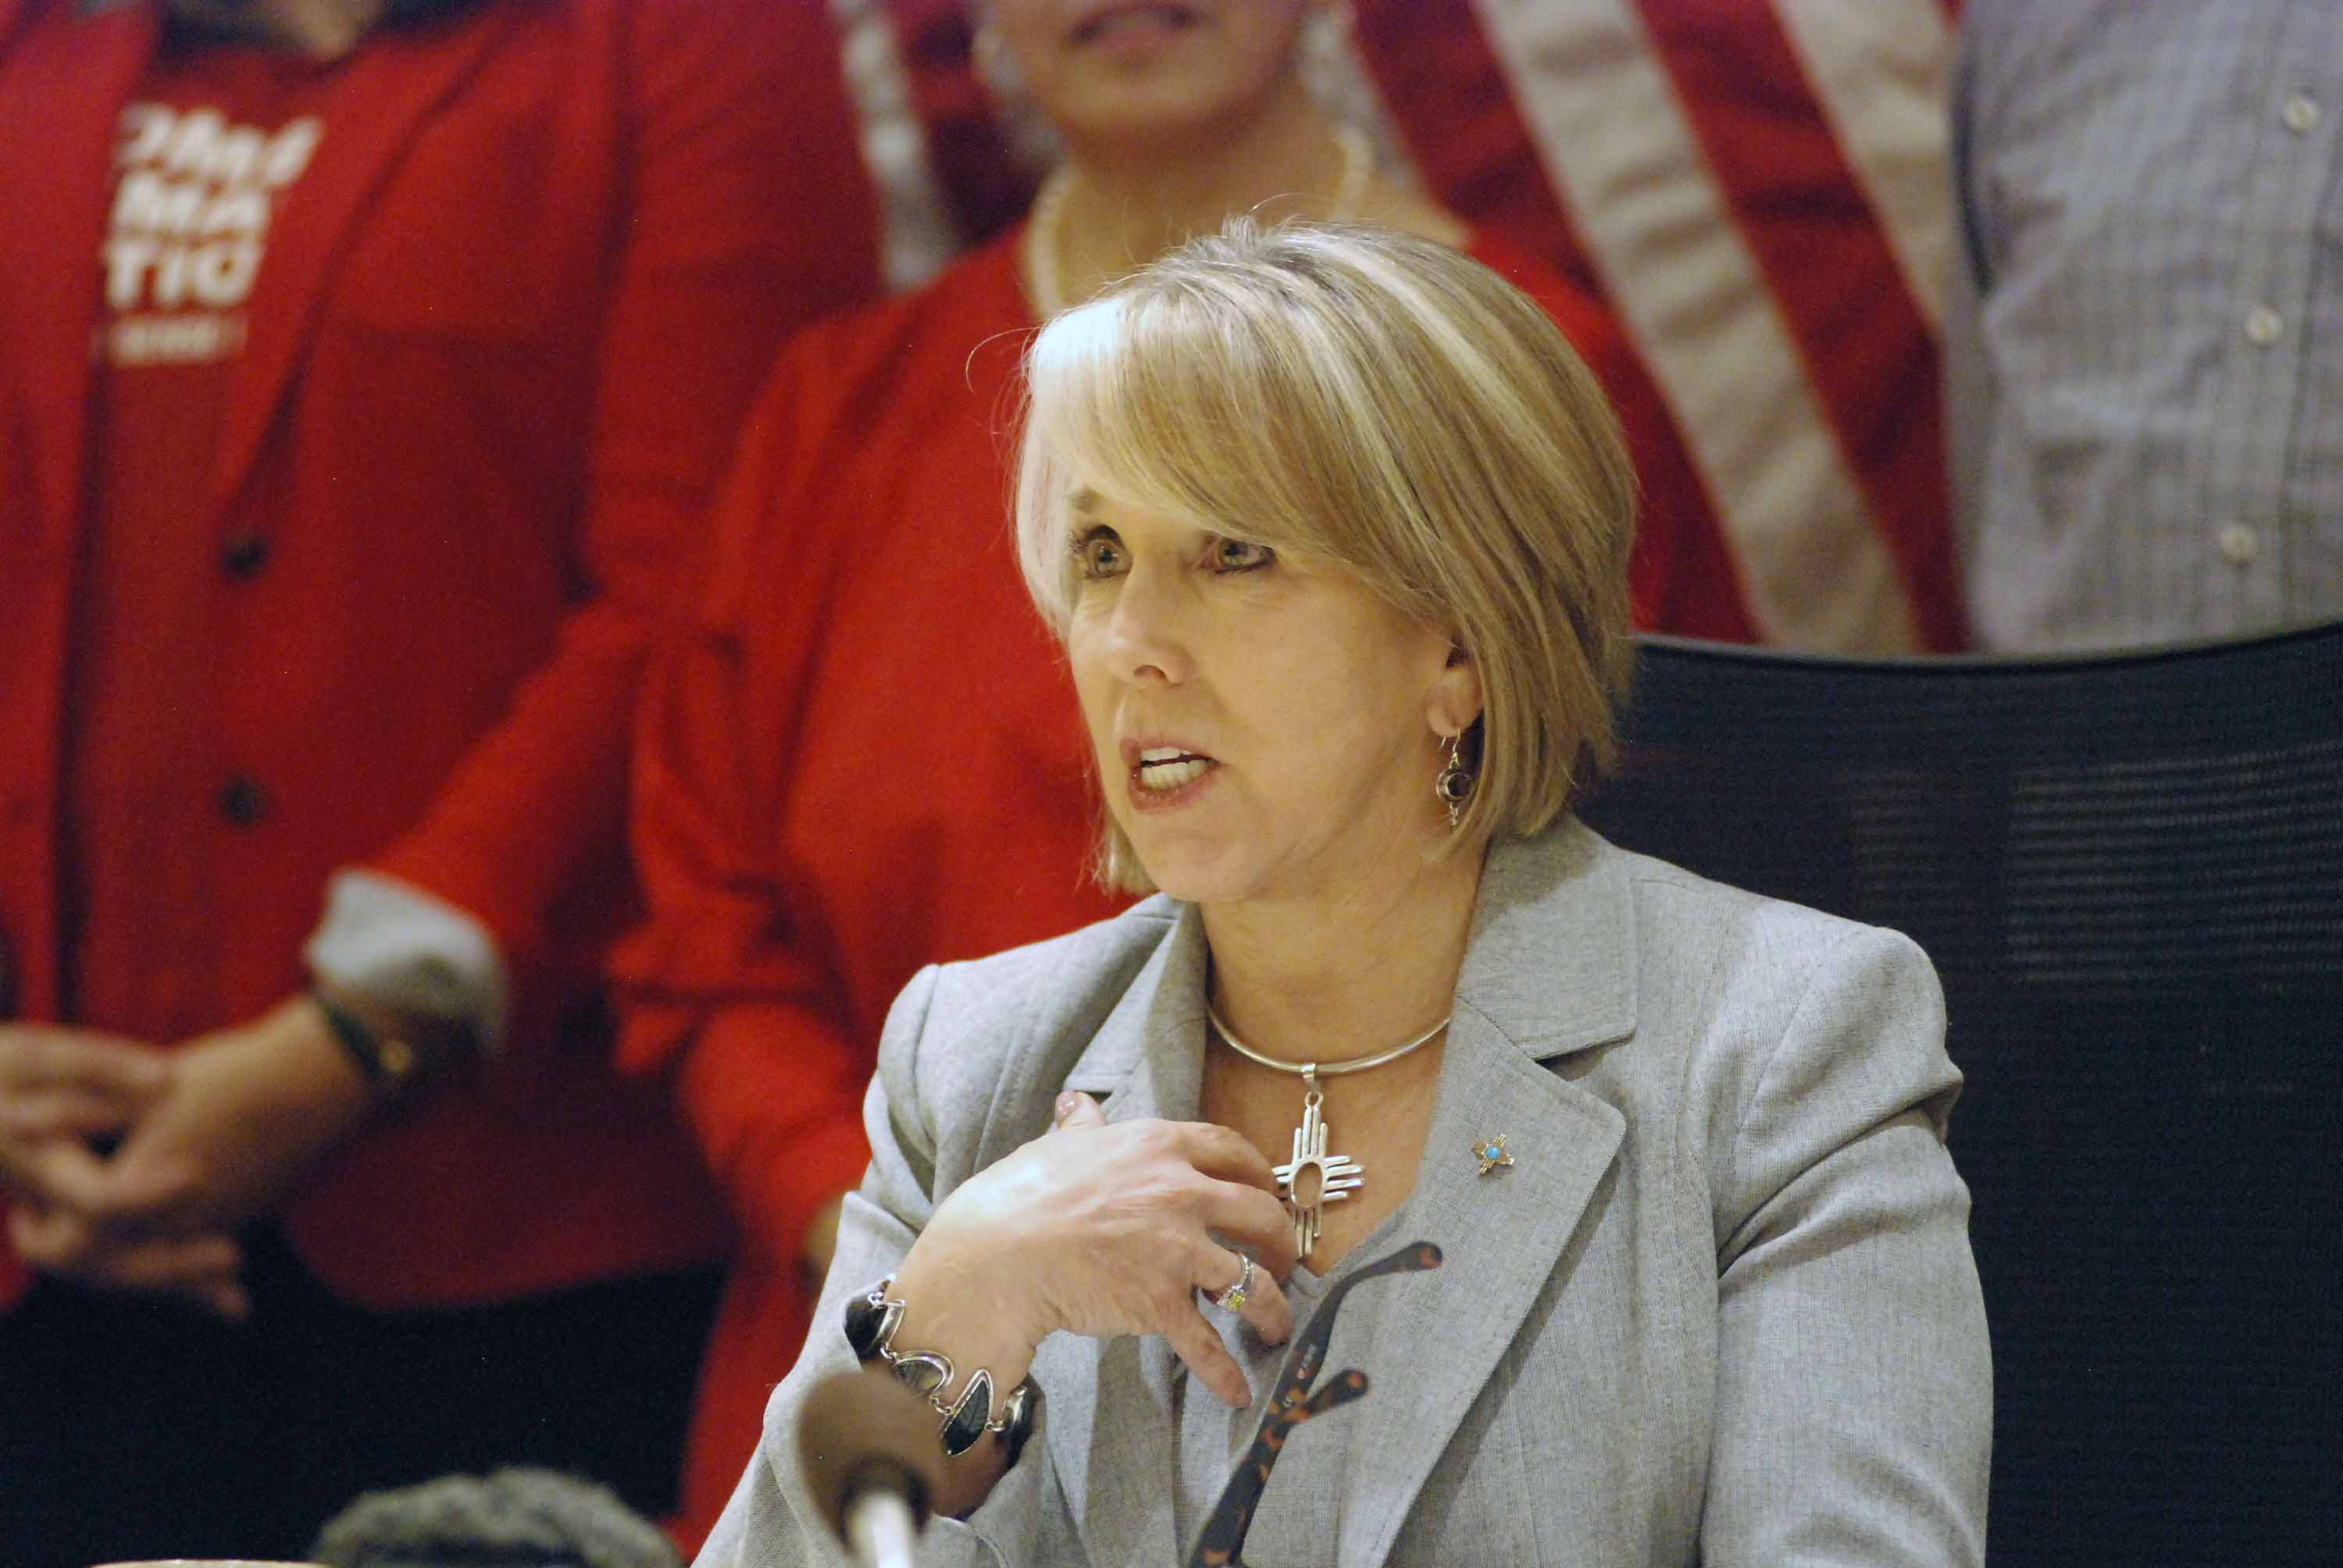 New Mexico's governor signed a red flag gun measure into law and urged sheriffs to enforce it or resign